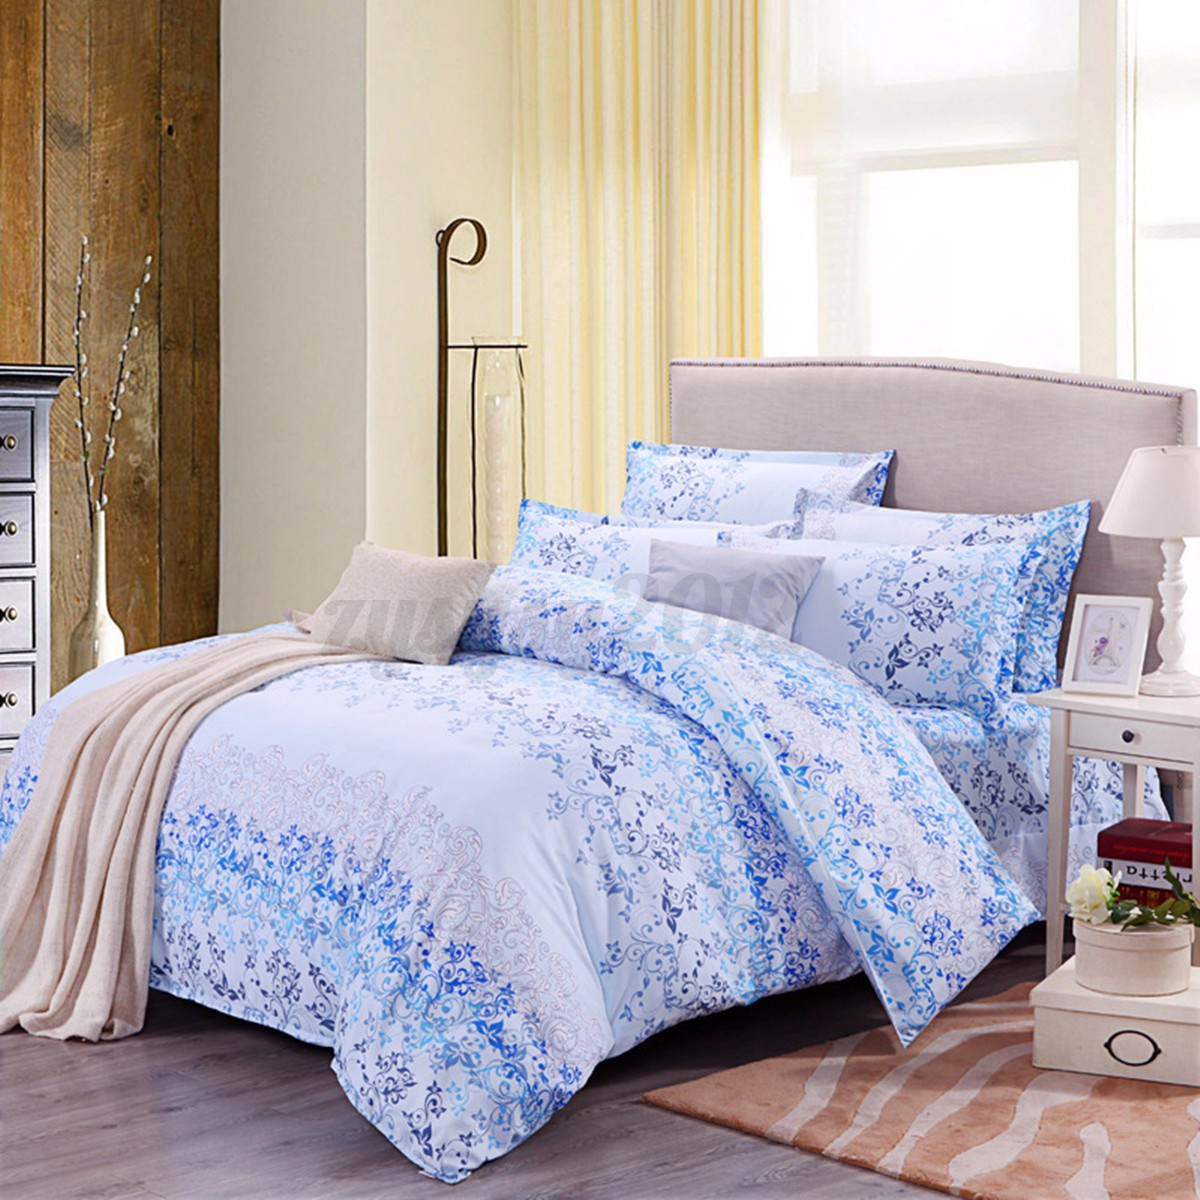 The Duvet Cover is hand finished in % cotton with same stripe reverse and cotton twill ties for a casual, sleep-in look and feel. Ticking Stripe Duvet Cover features: * Coordinates with our .